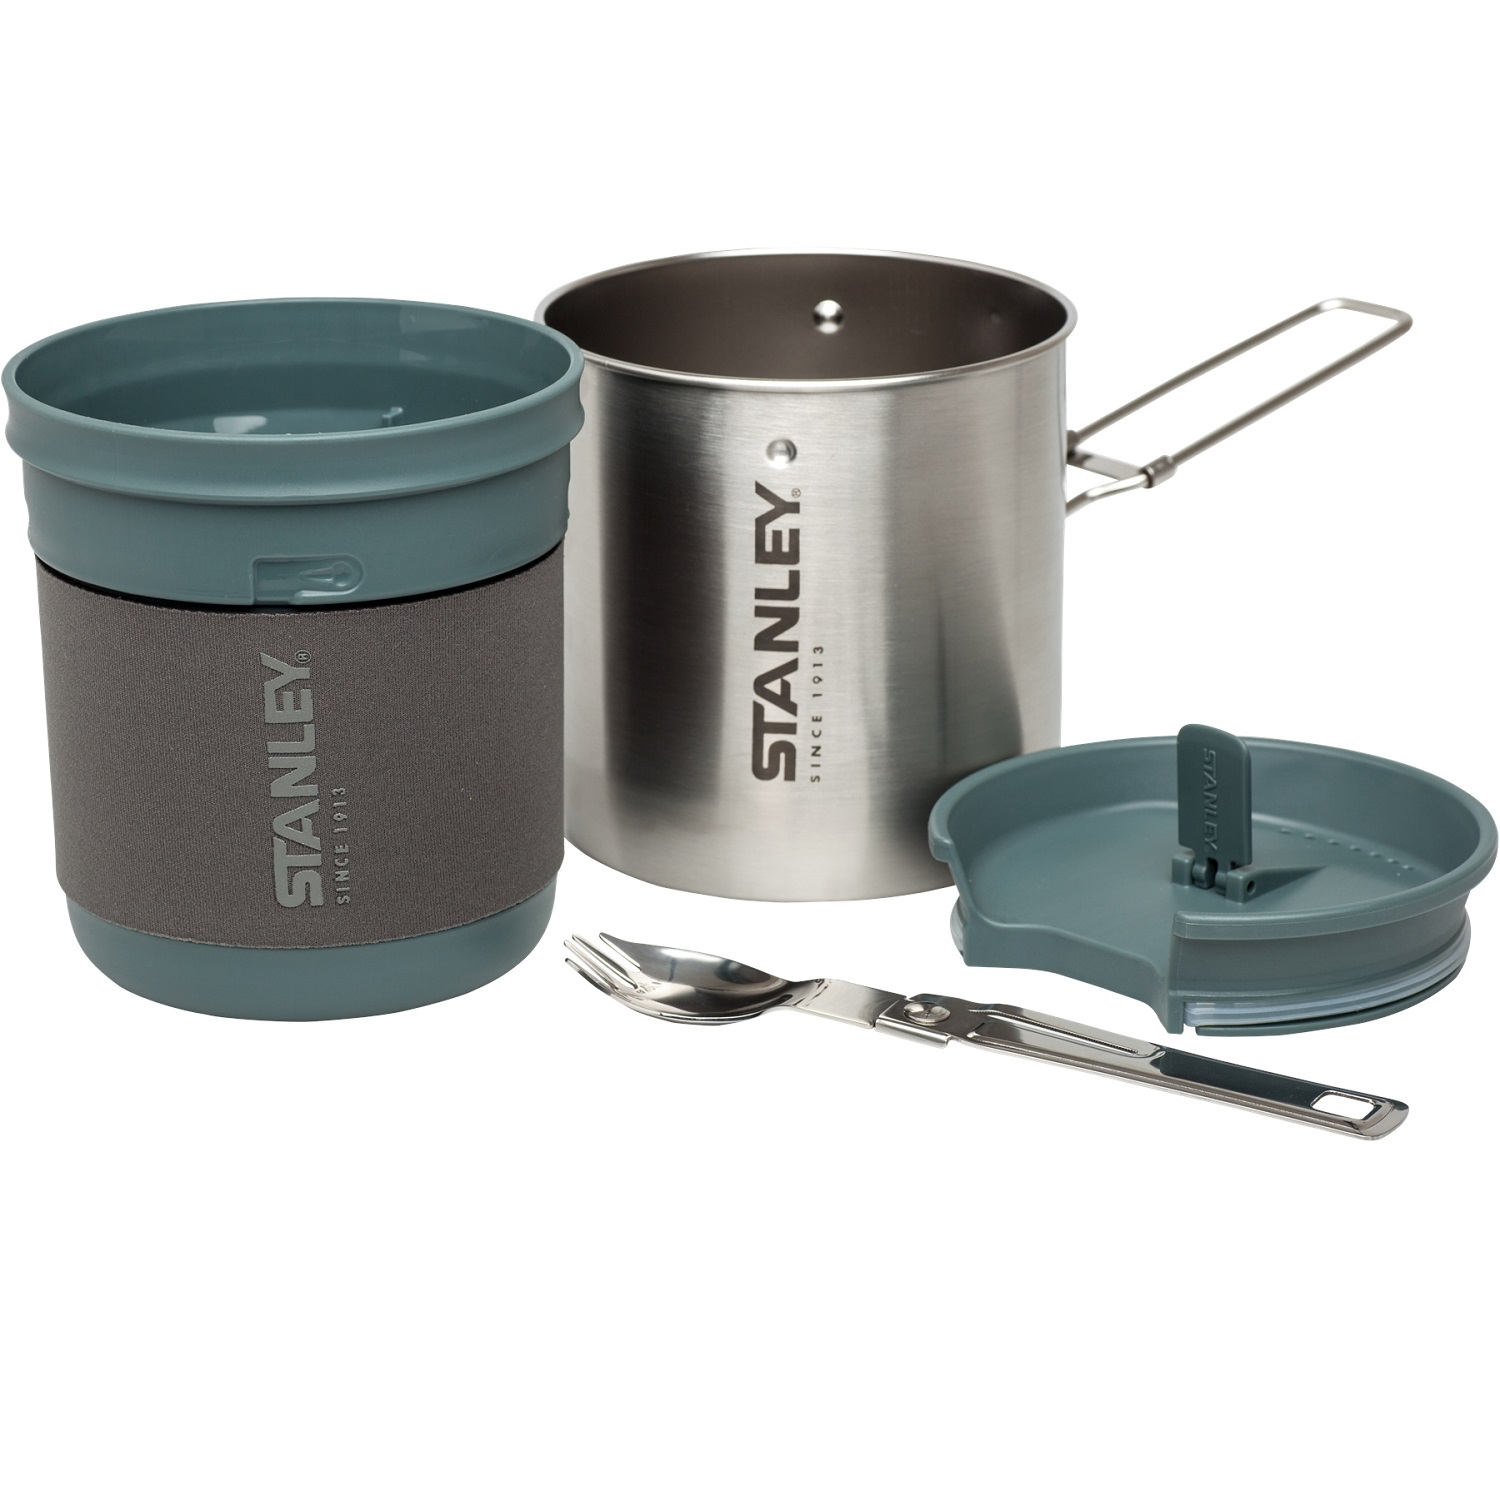 Stanley Mountain 24 oz Compact Cook Set